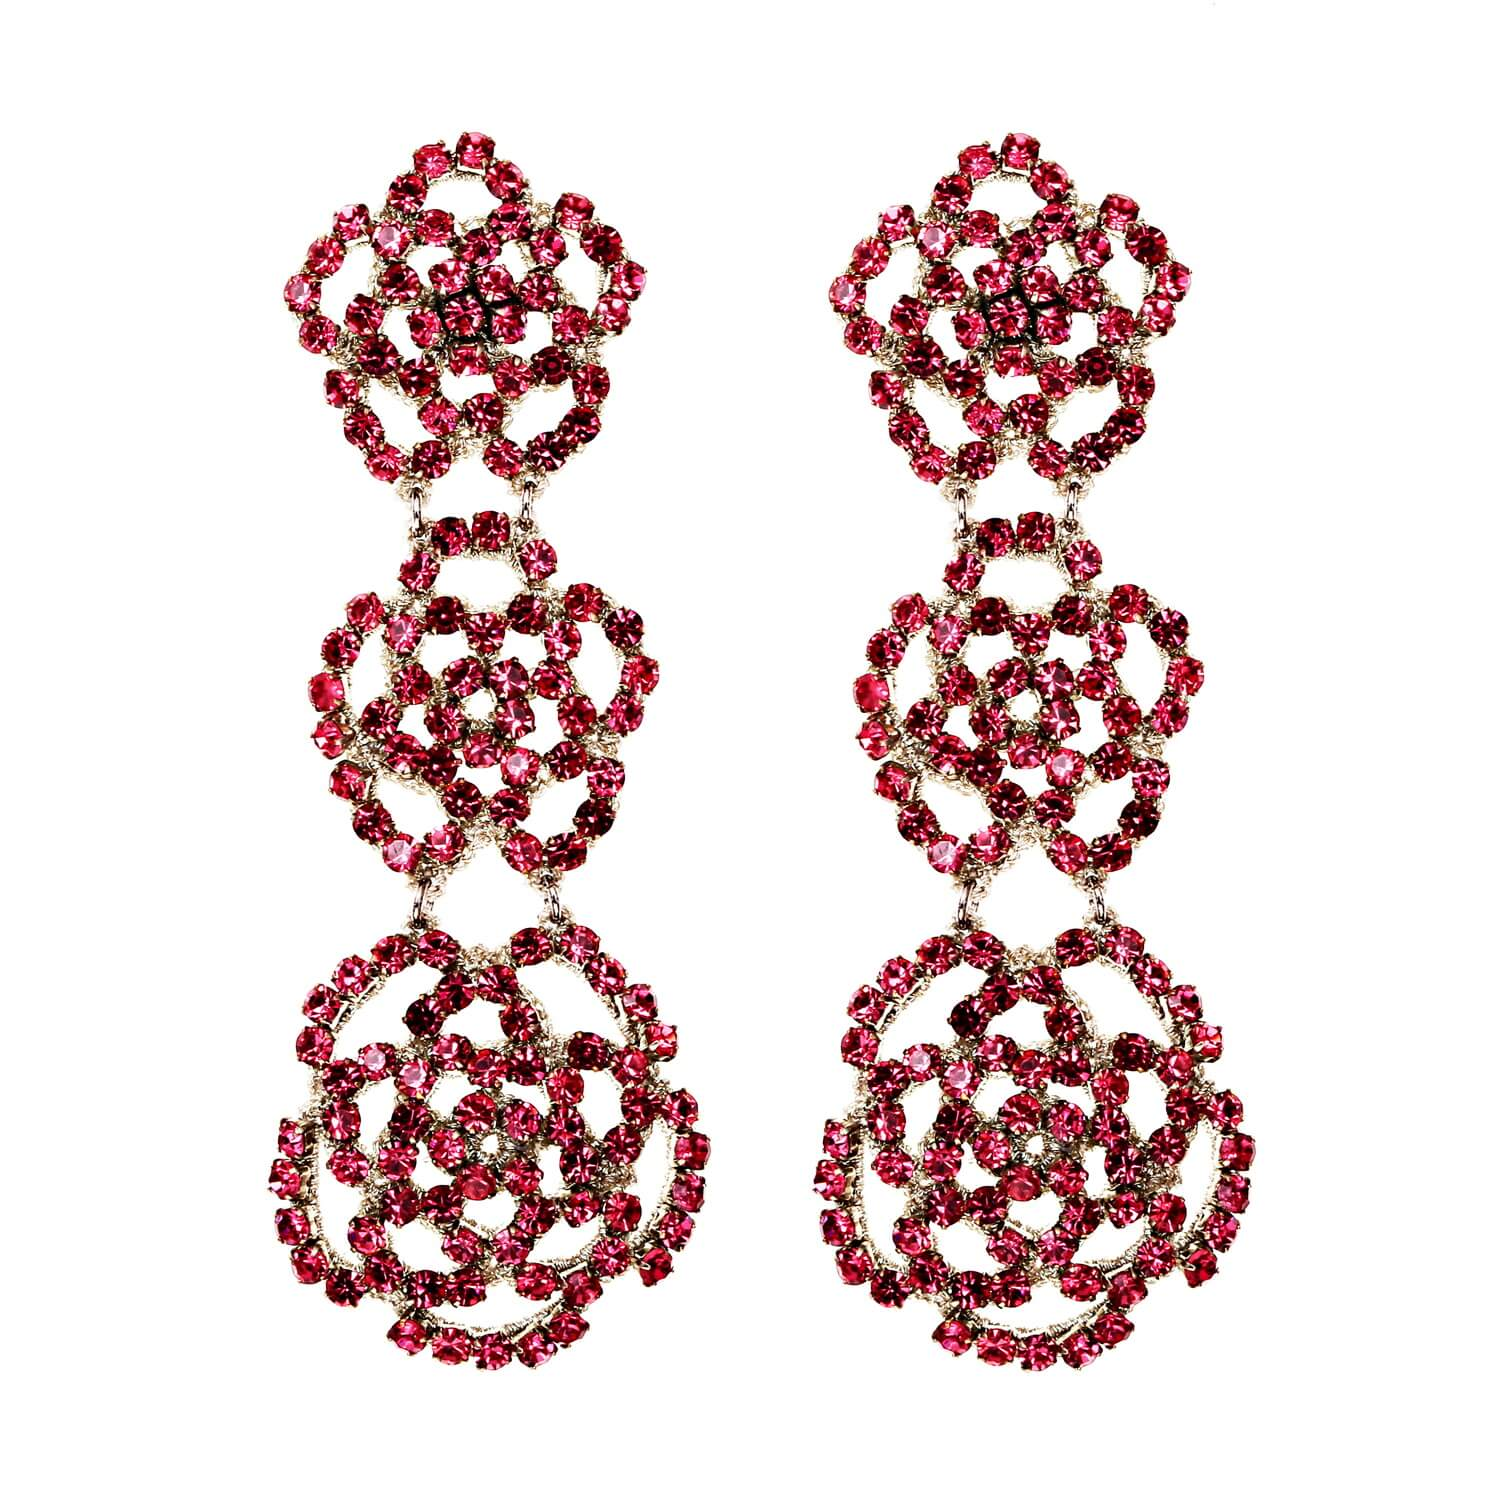 Bonita Rose Earring